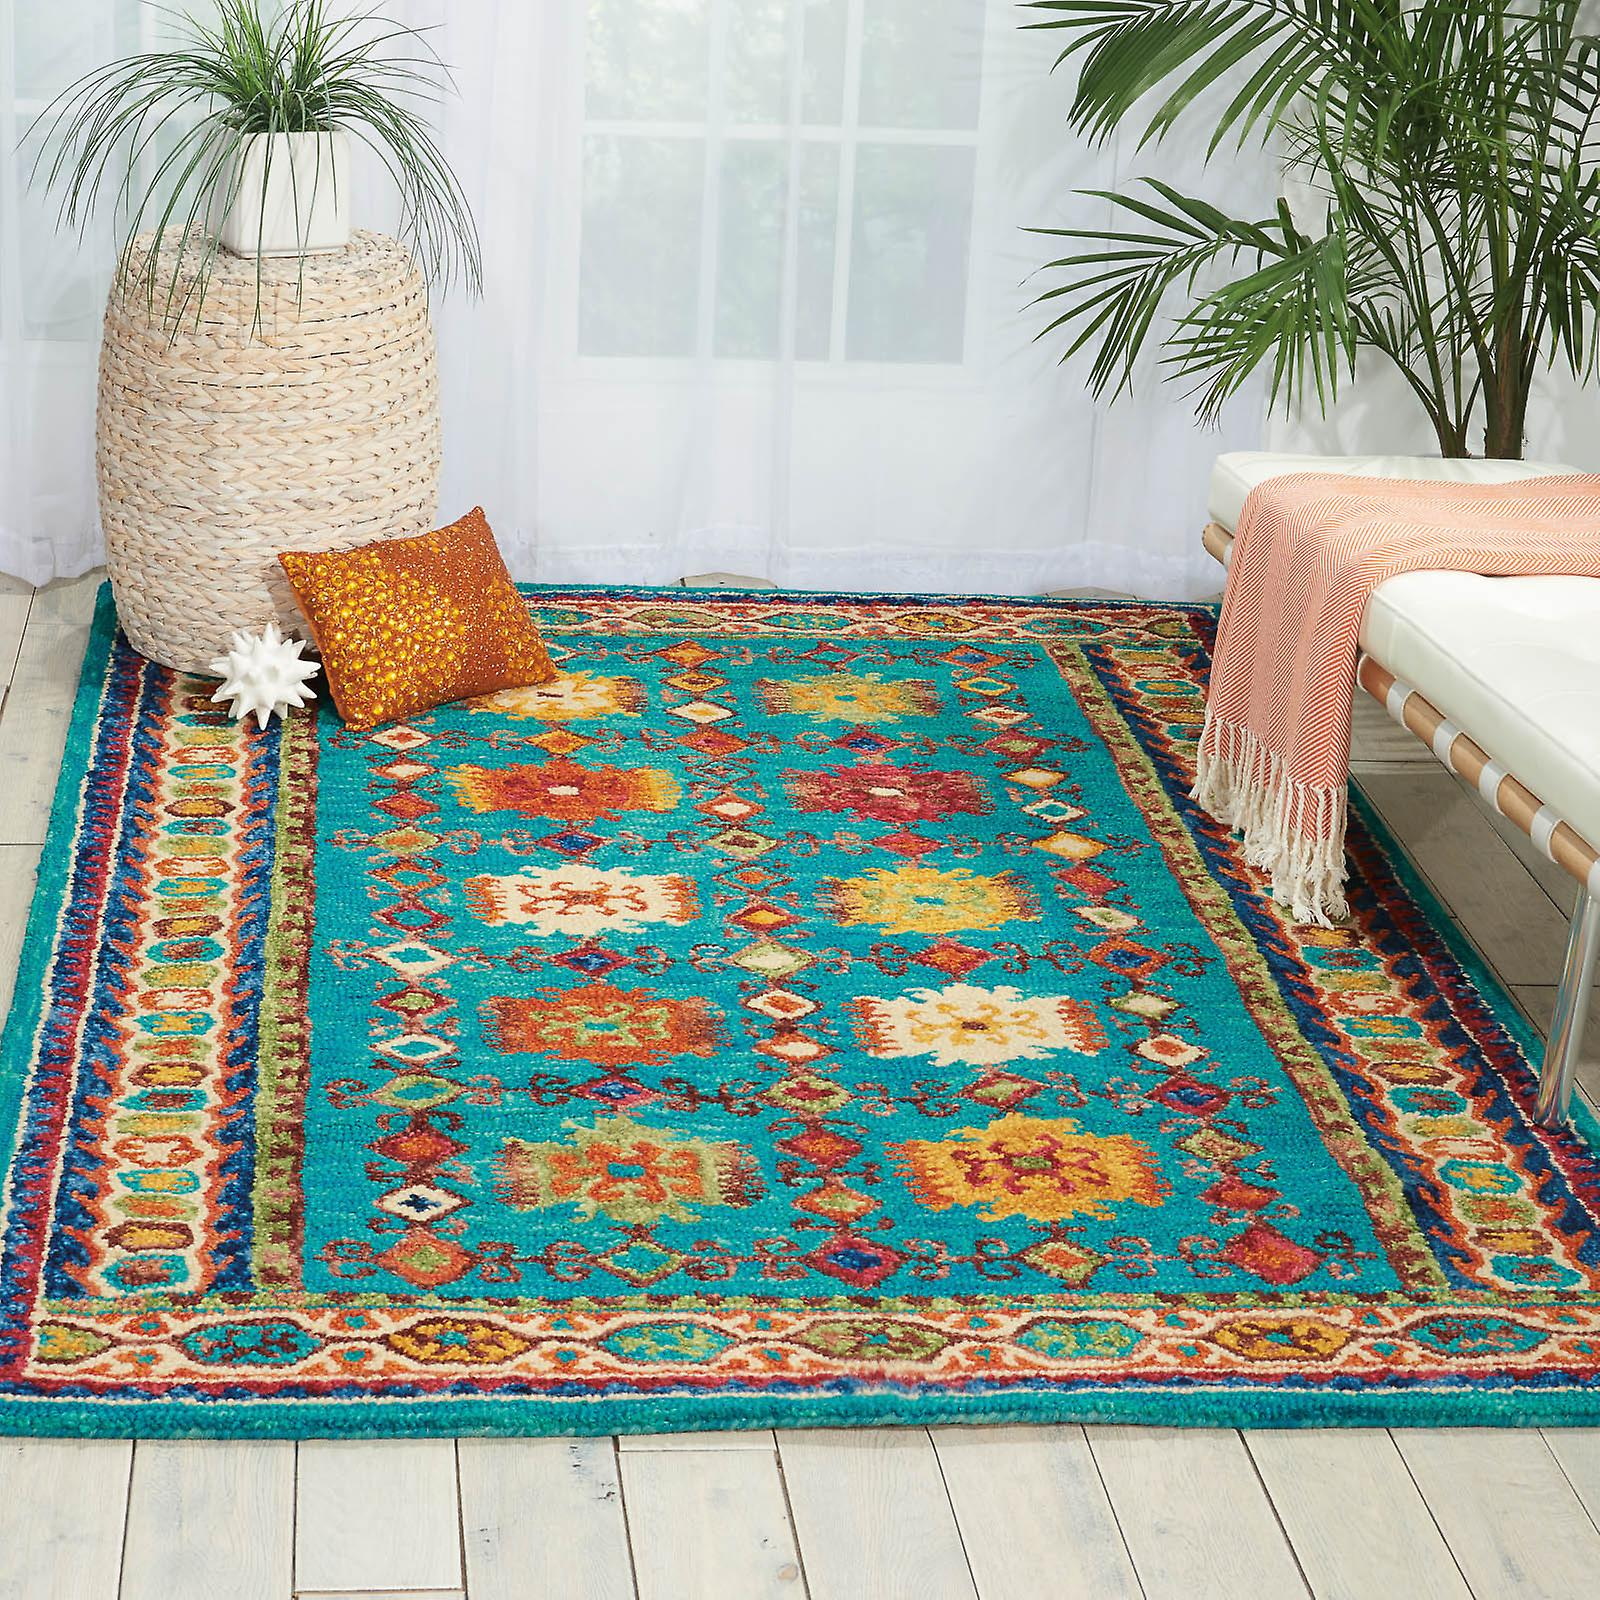 Vibrant Rugs Vib09 In Teal By Nourison